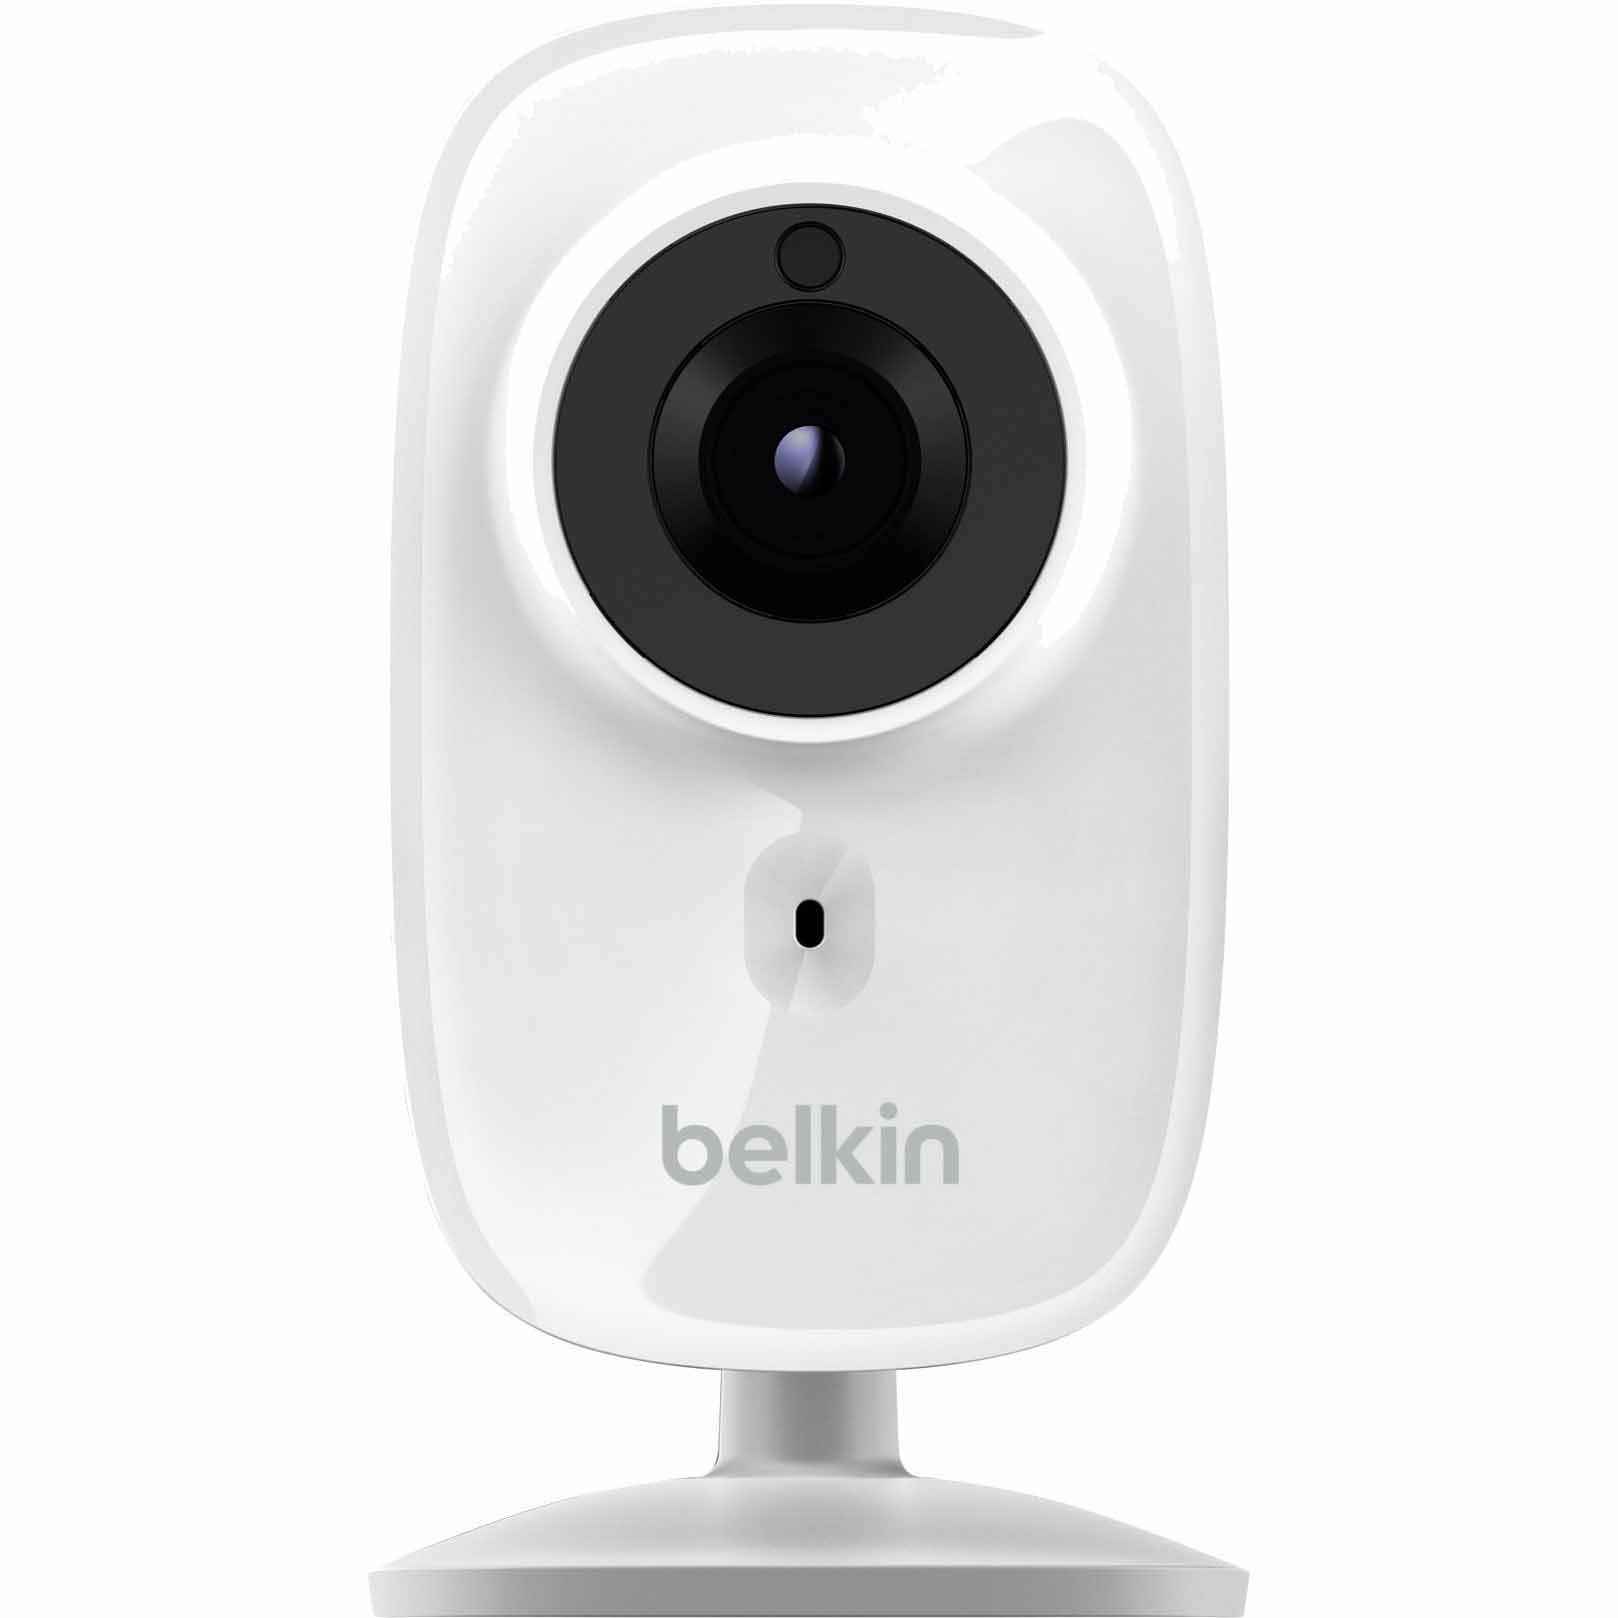 Belkin NetCam HD+ WiFi Camera w/ Glass Lens and Night Vision